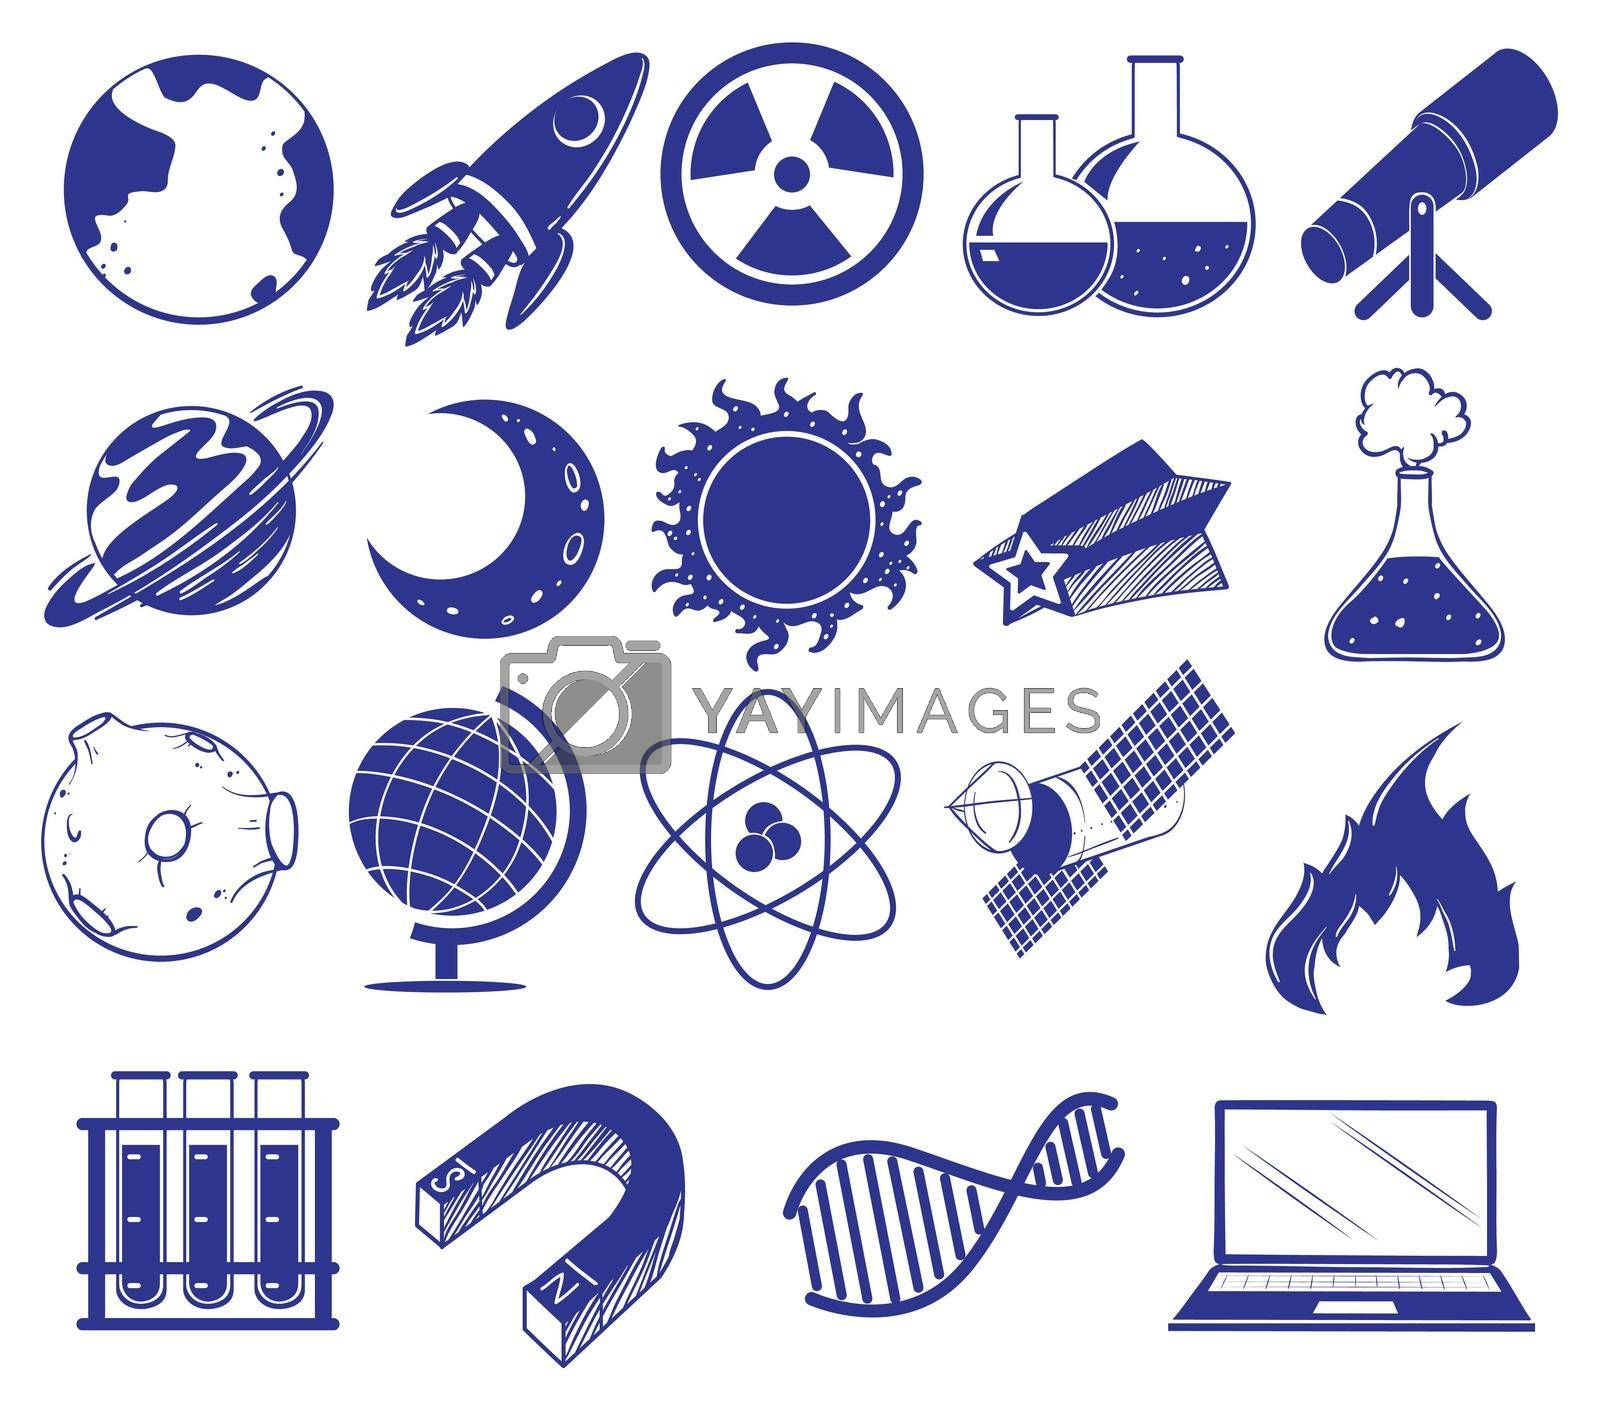 Royalty free image of All about science and technology by iimages